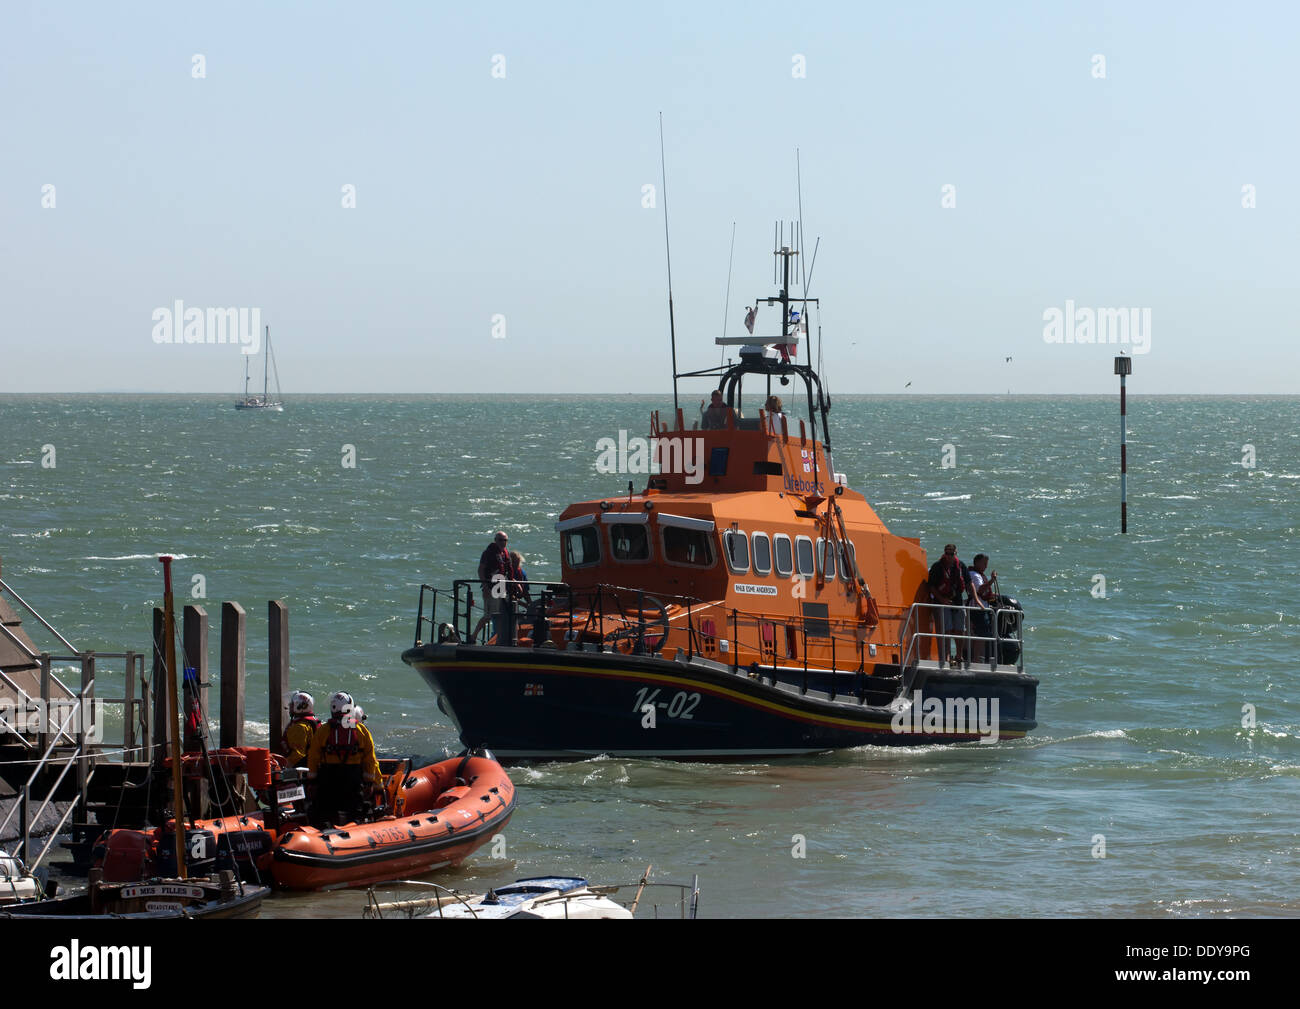 The Esme Anderson, and the Bob Turnbull lifeboats, on display during Broadstairs Water Gala Day 2013. - Stock Image